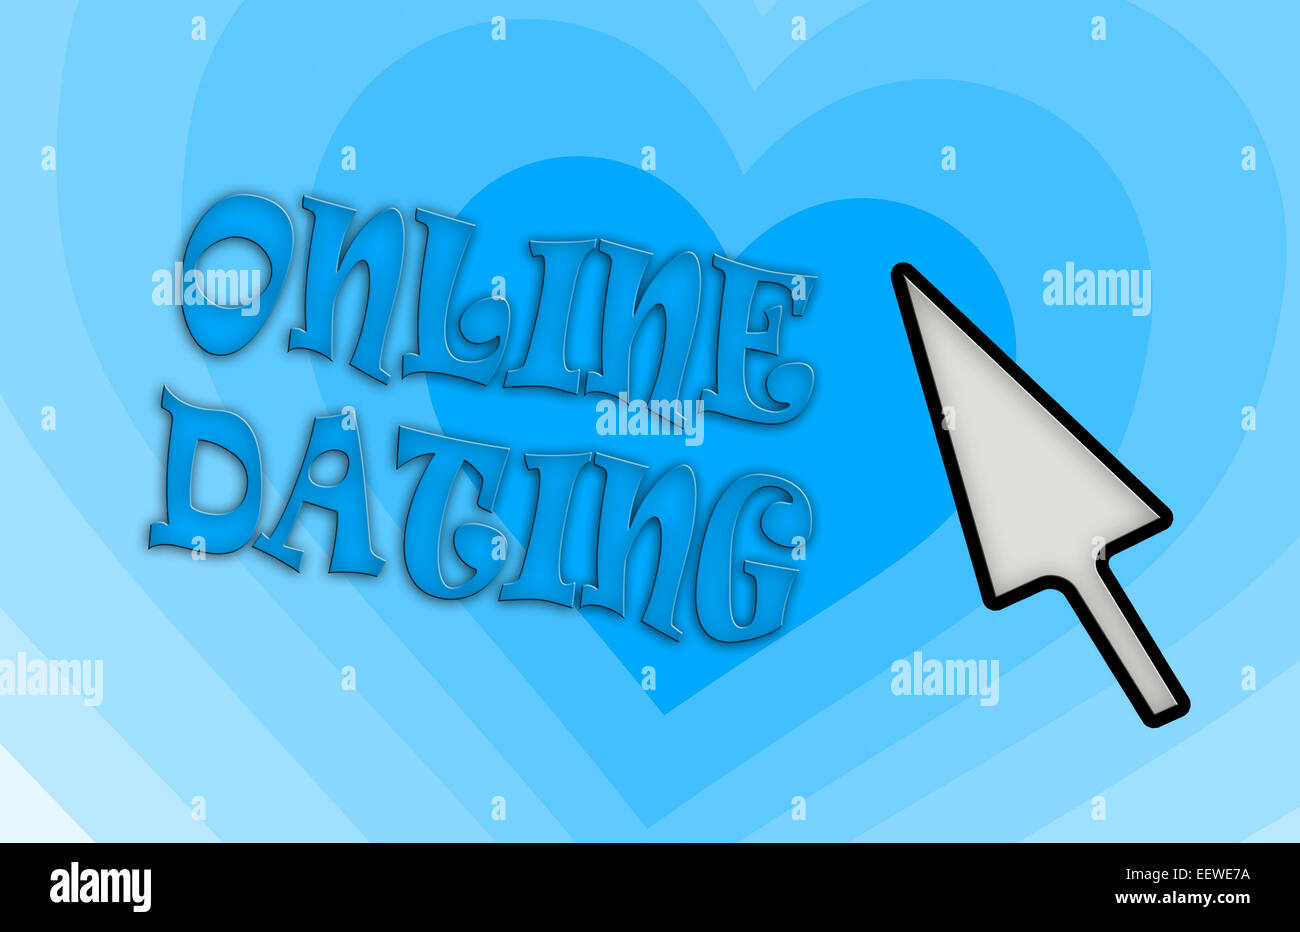 Heart shape backgound - Concept of dating - blue - Stock Image